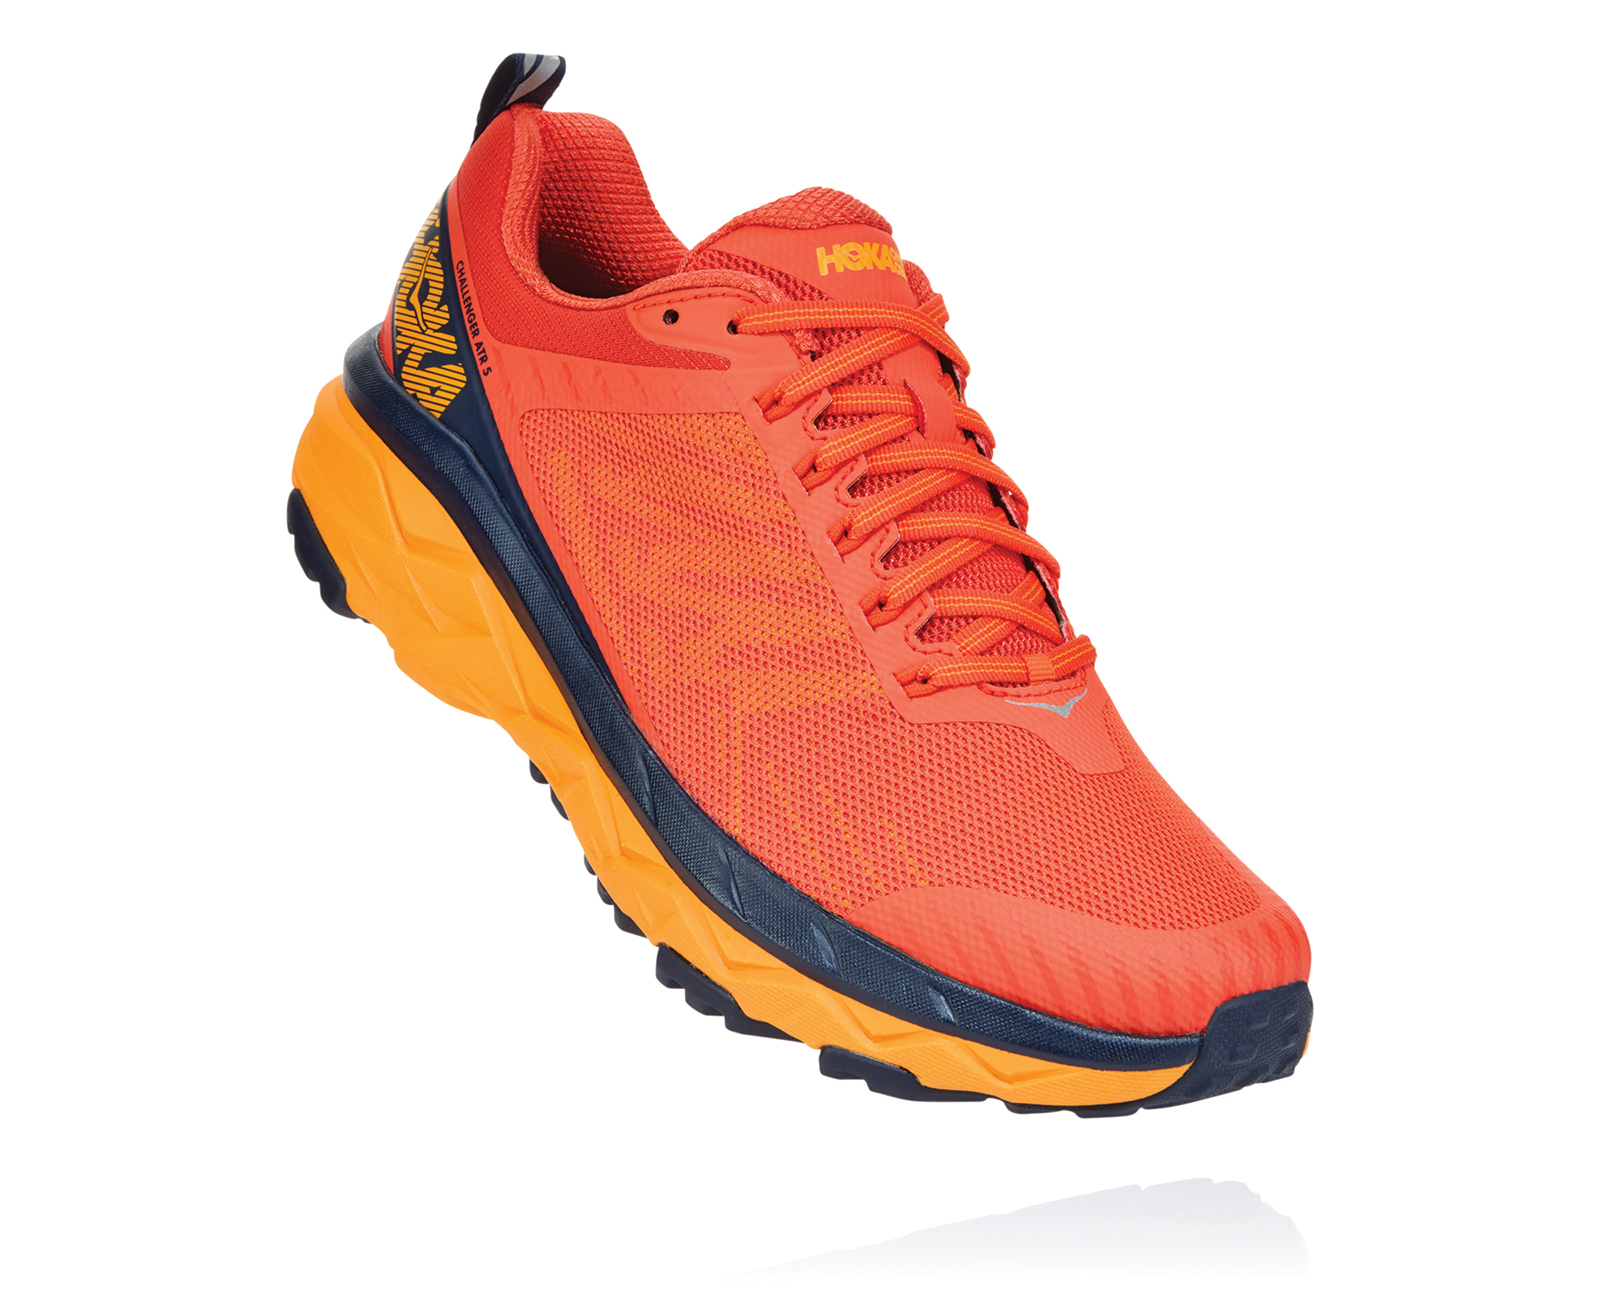 HOKA ONE ONE CHALLENGER ATR 5 STORMY WEATHER Chaussures de Trail